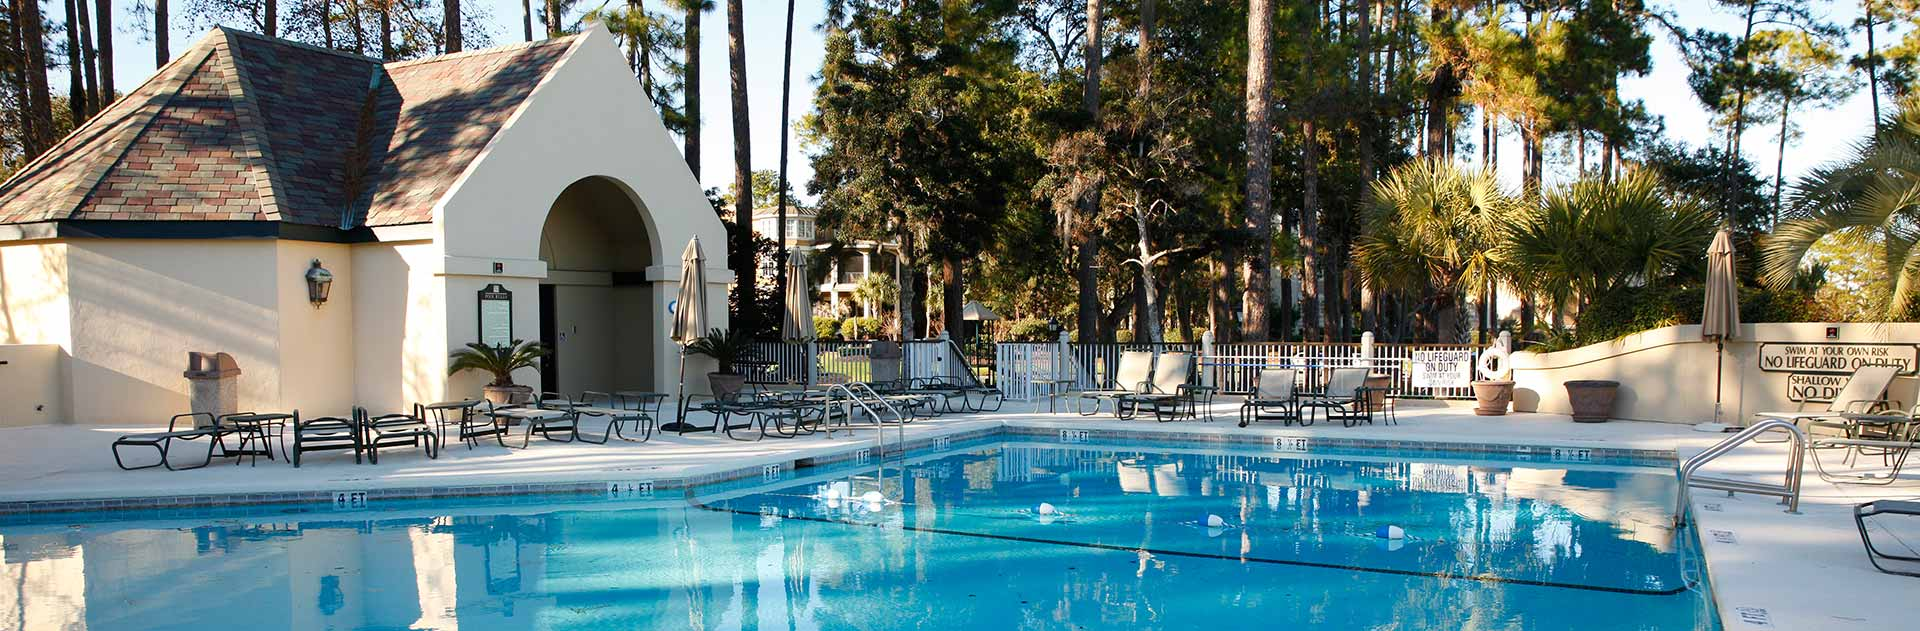 Wexford Plantation Hilton Head pool